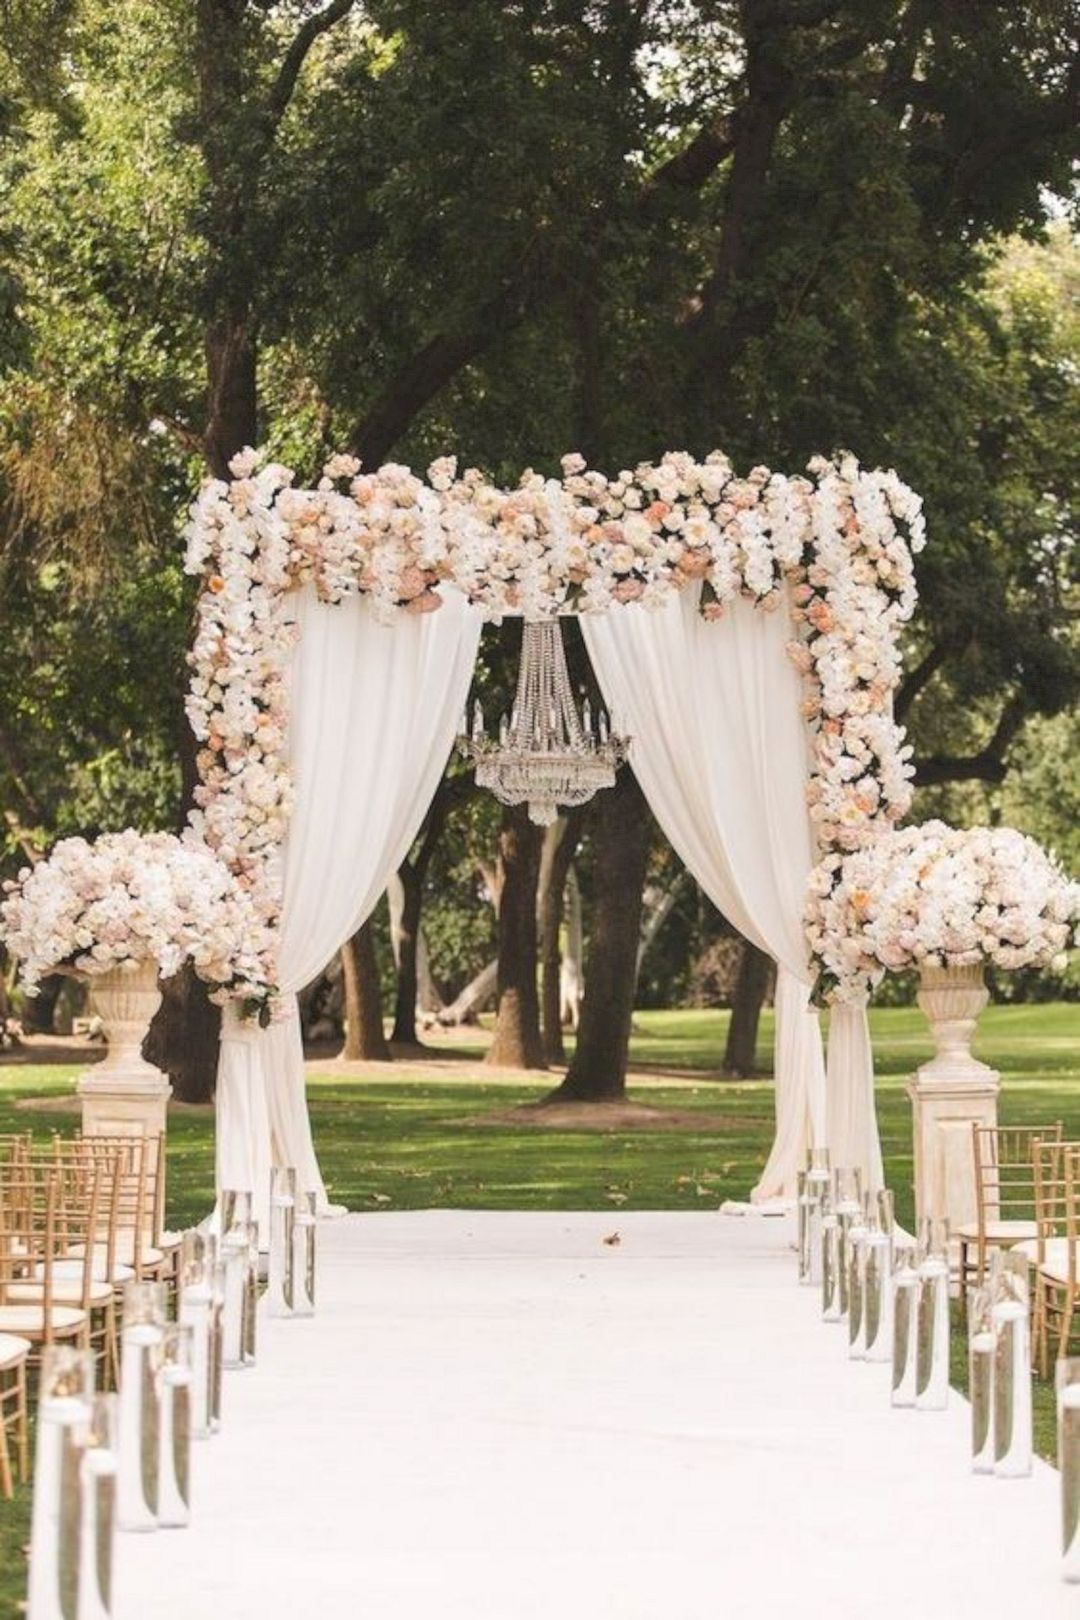 15 Classic Wedding Decor Ideas | Pinterest | Classic wedding decor ...